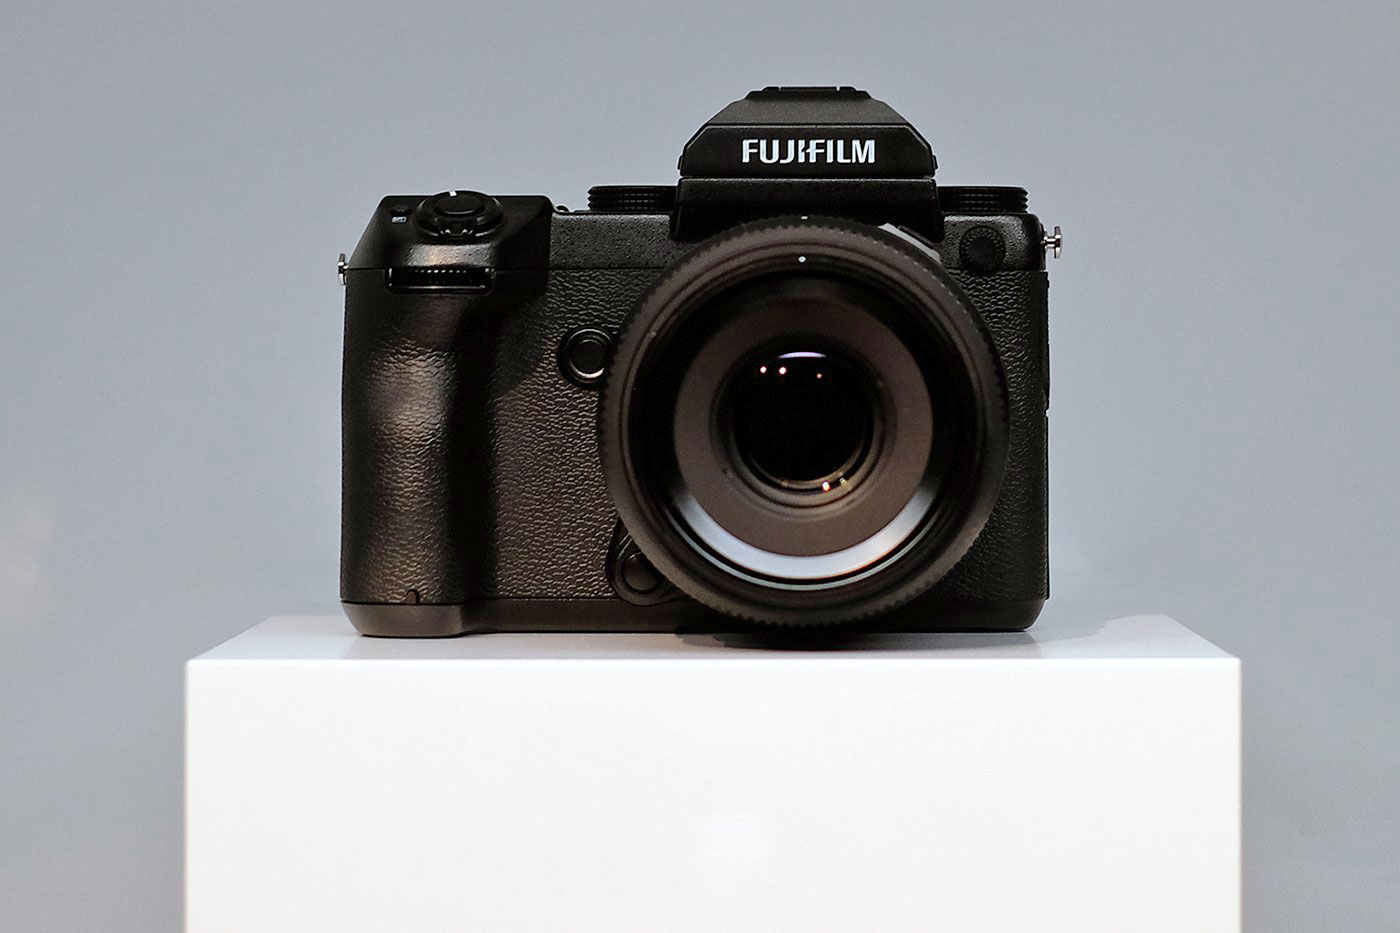 Fujifilm GFX 50S: A Tiny Mirrorless Camera With a Humongous Medium Format Sensor